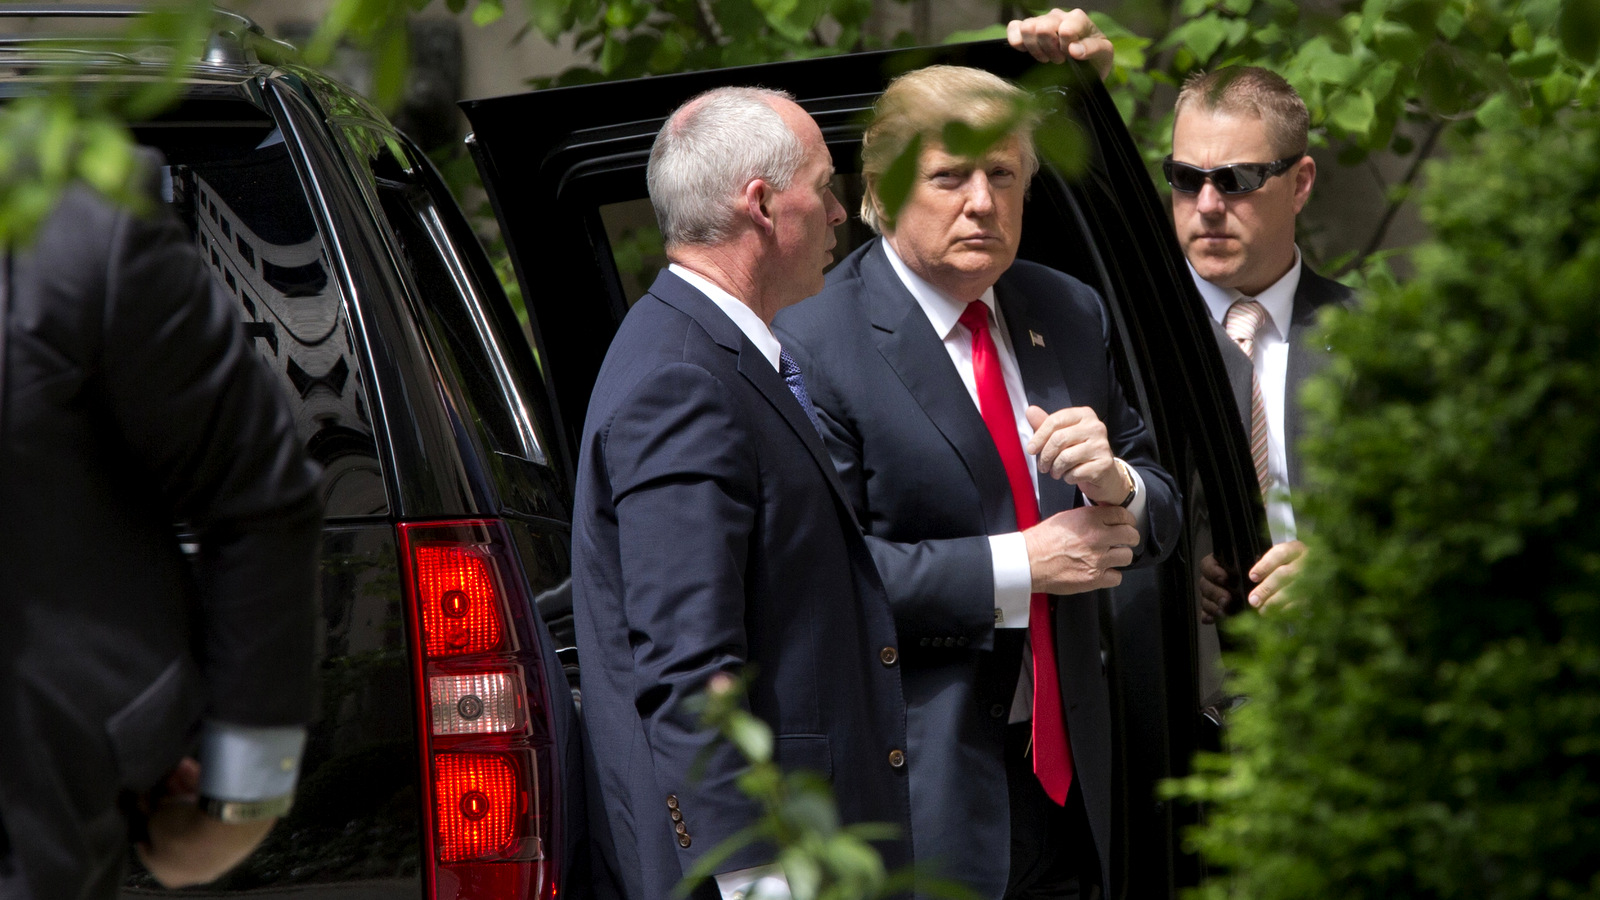 Republican presidential candidate Donald Trump arrives at the residence of former Secretary of State Henry Kissinger, Wednesday, May 18, 2016, in New York. (AP/Mary Altaffer)